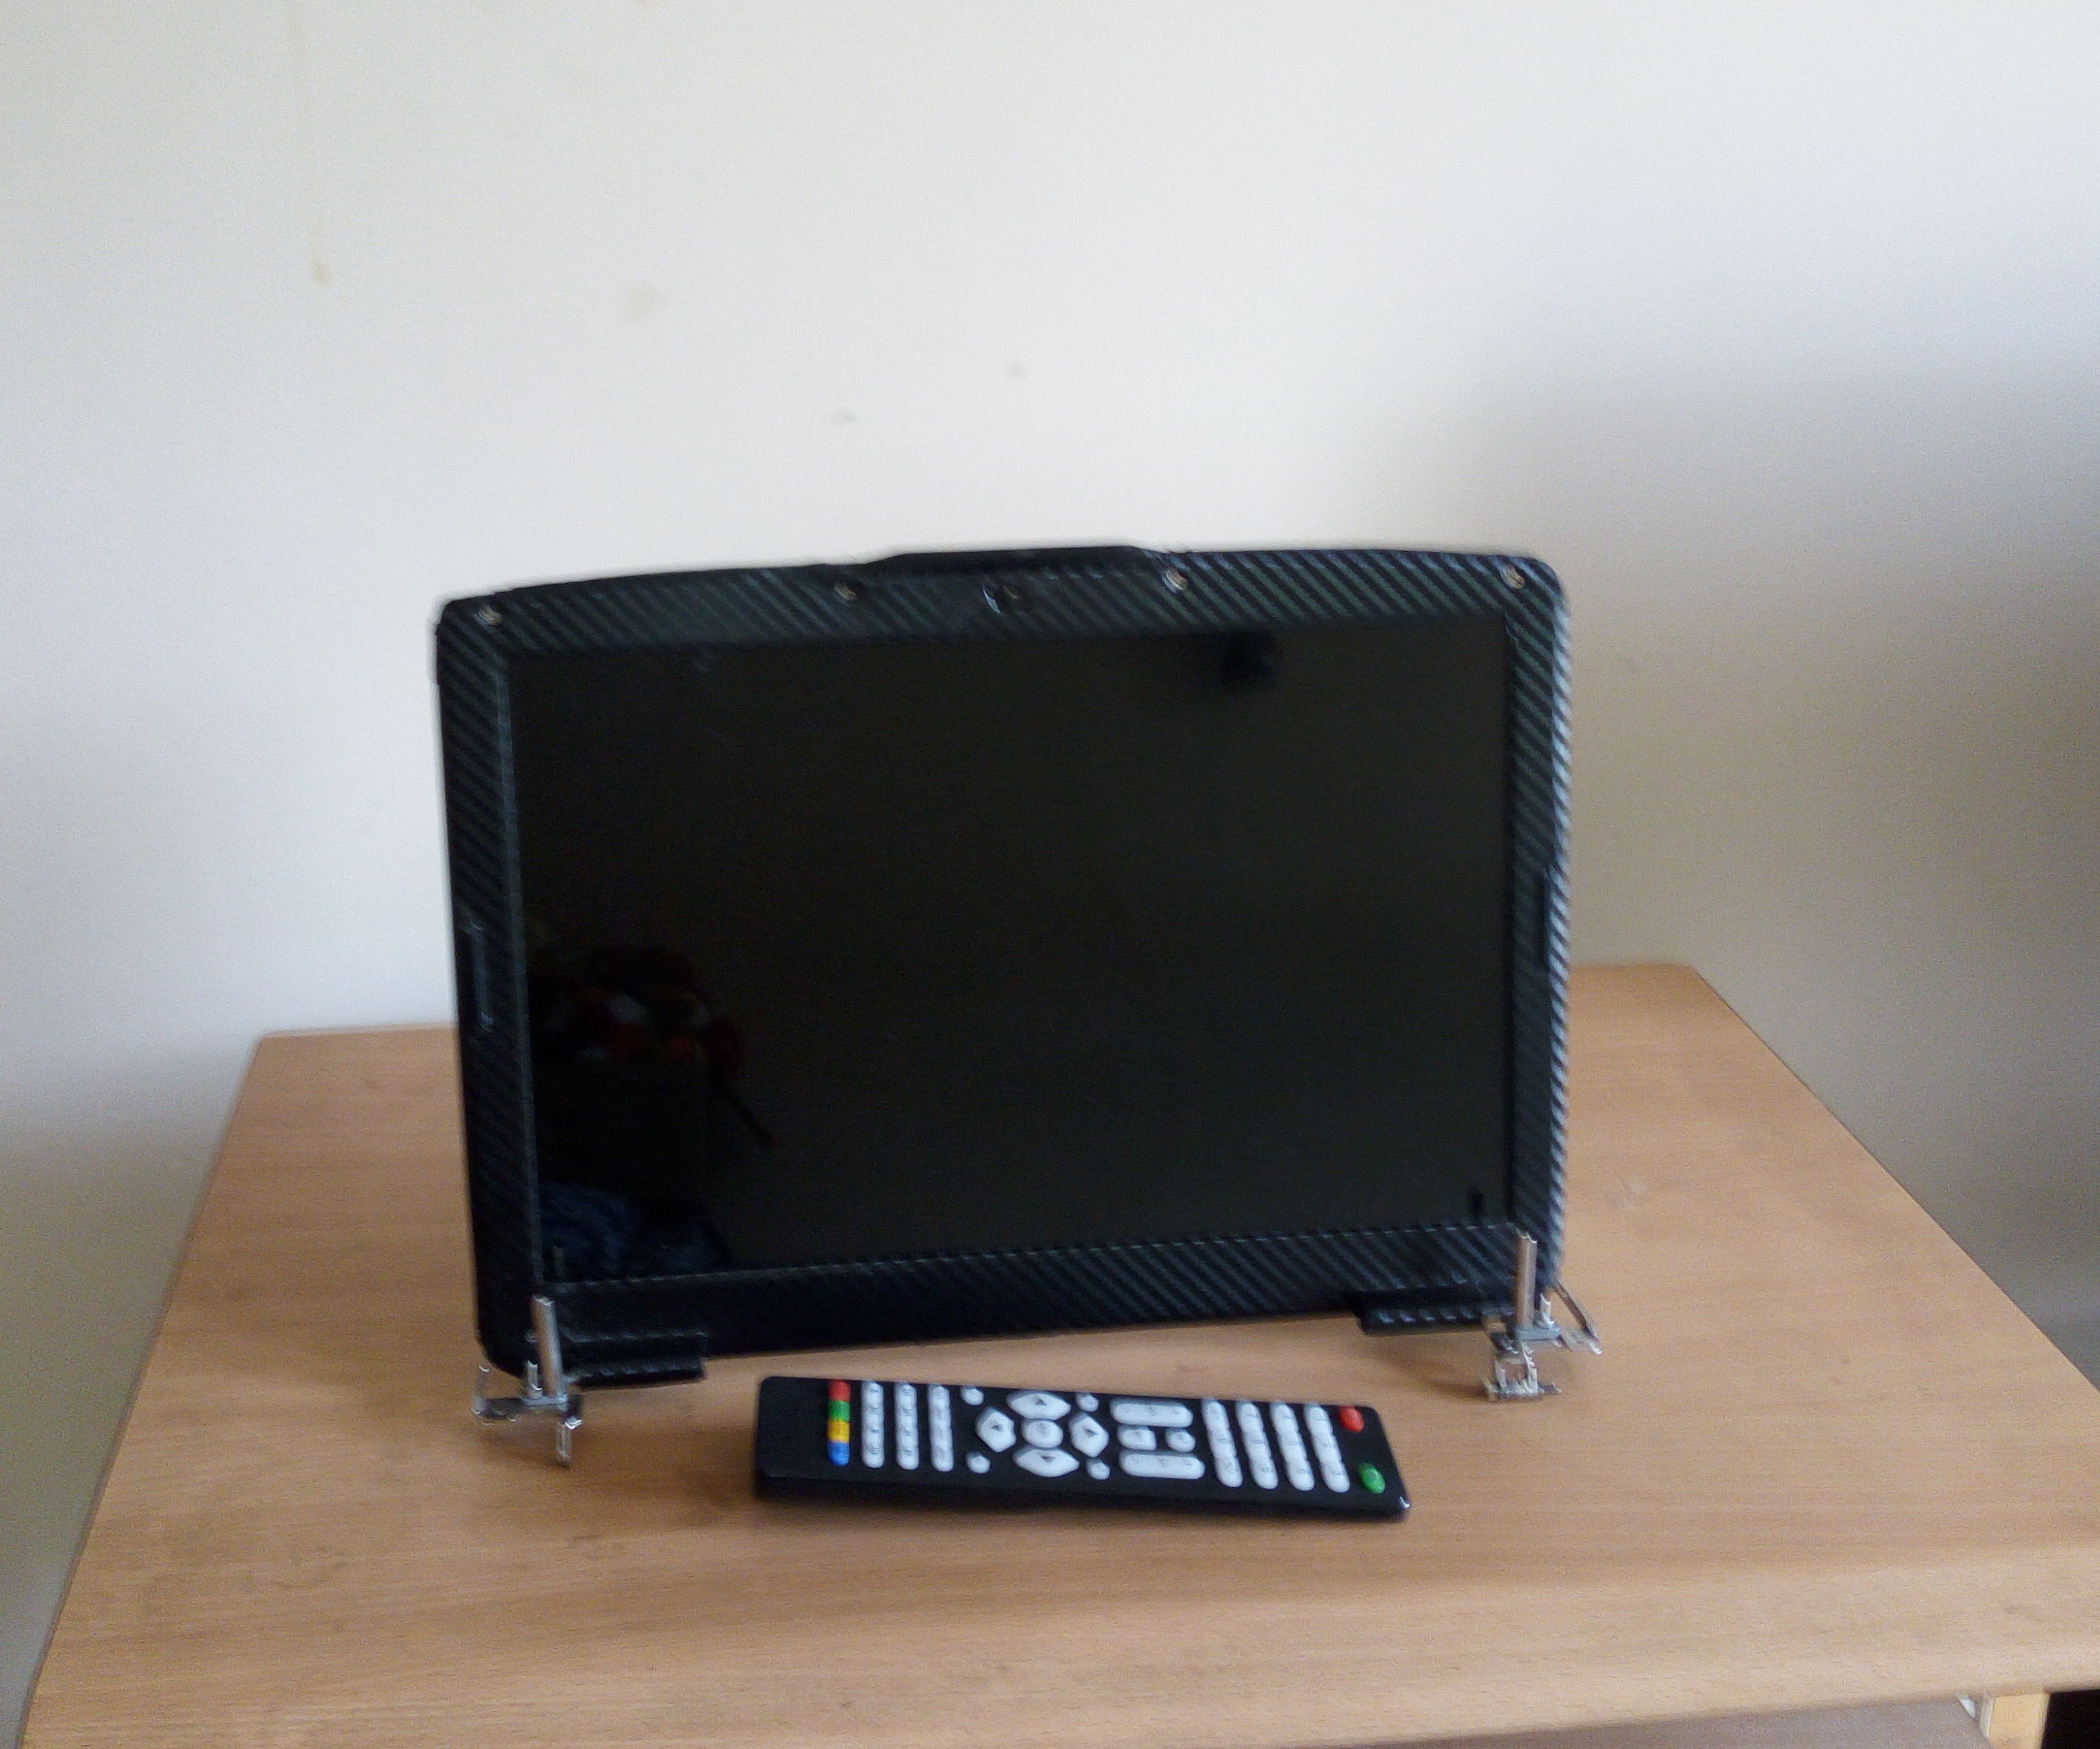 Convert You Laptop LCD to External Monitor